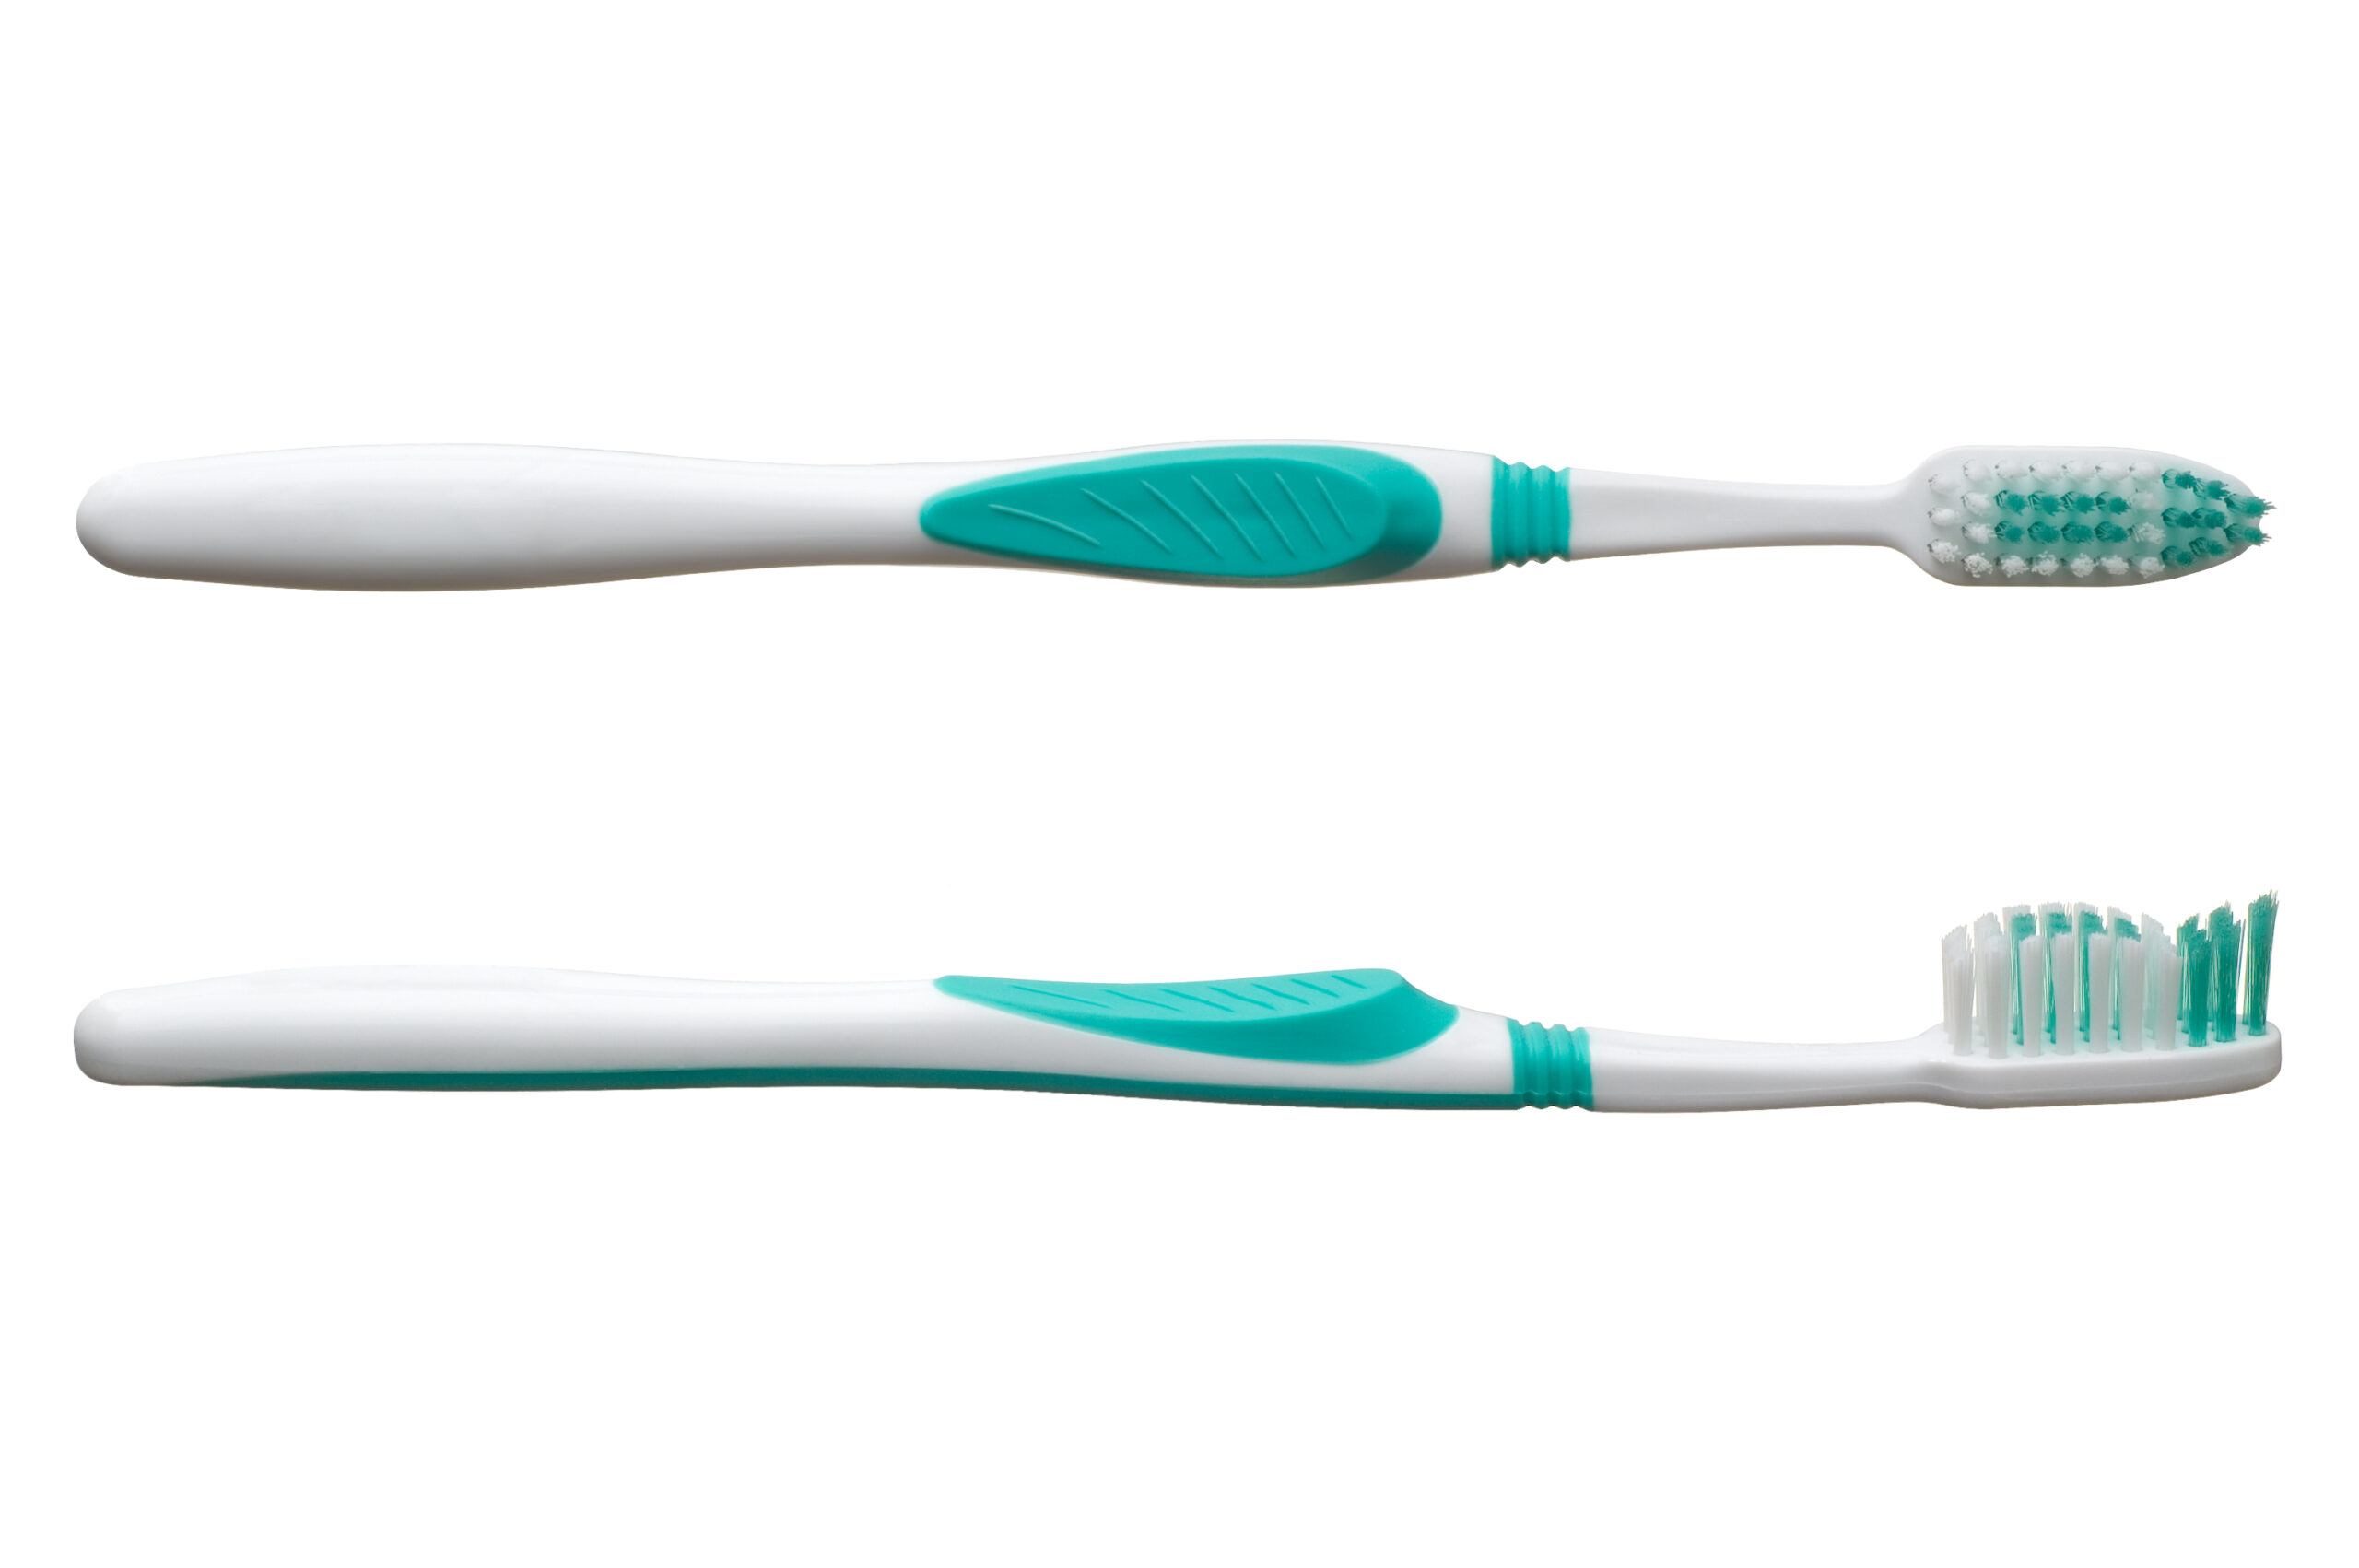 Choosing the Best Toothbrush for your Dental Care